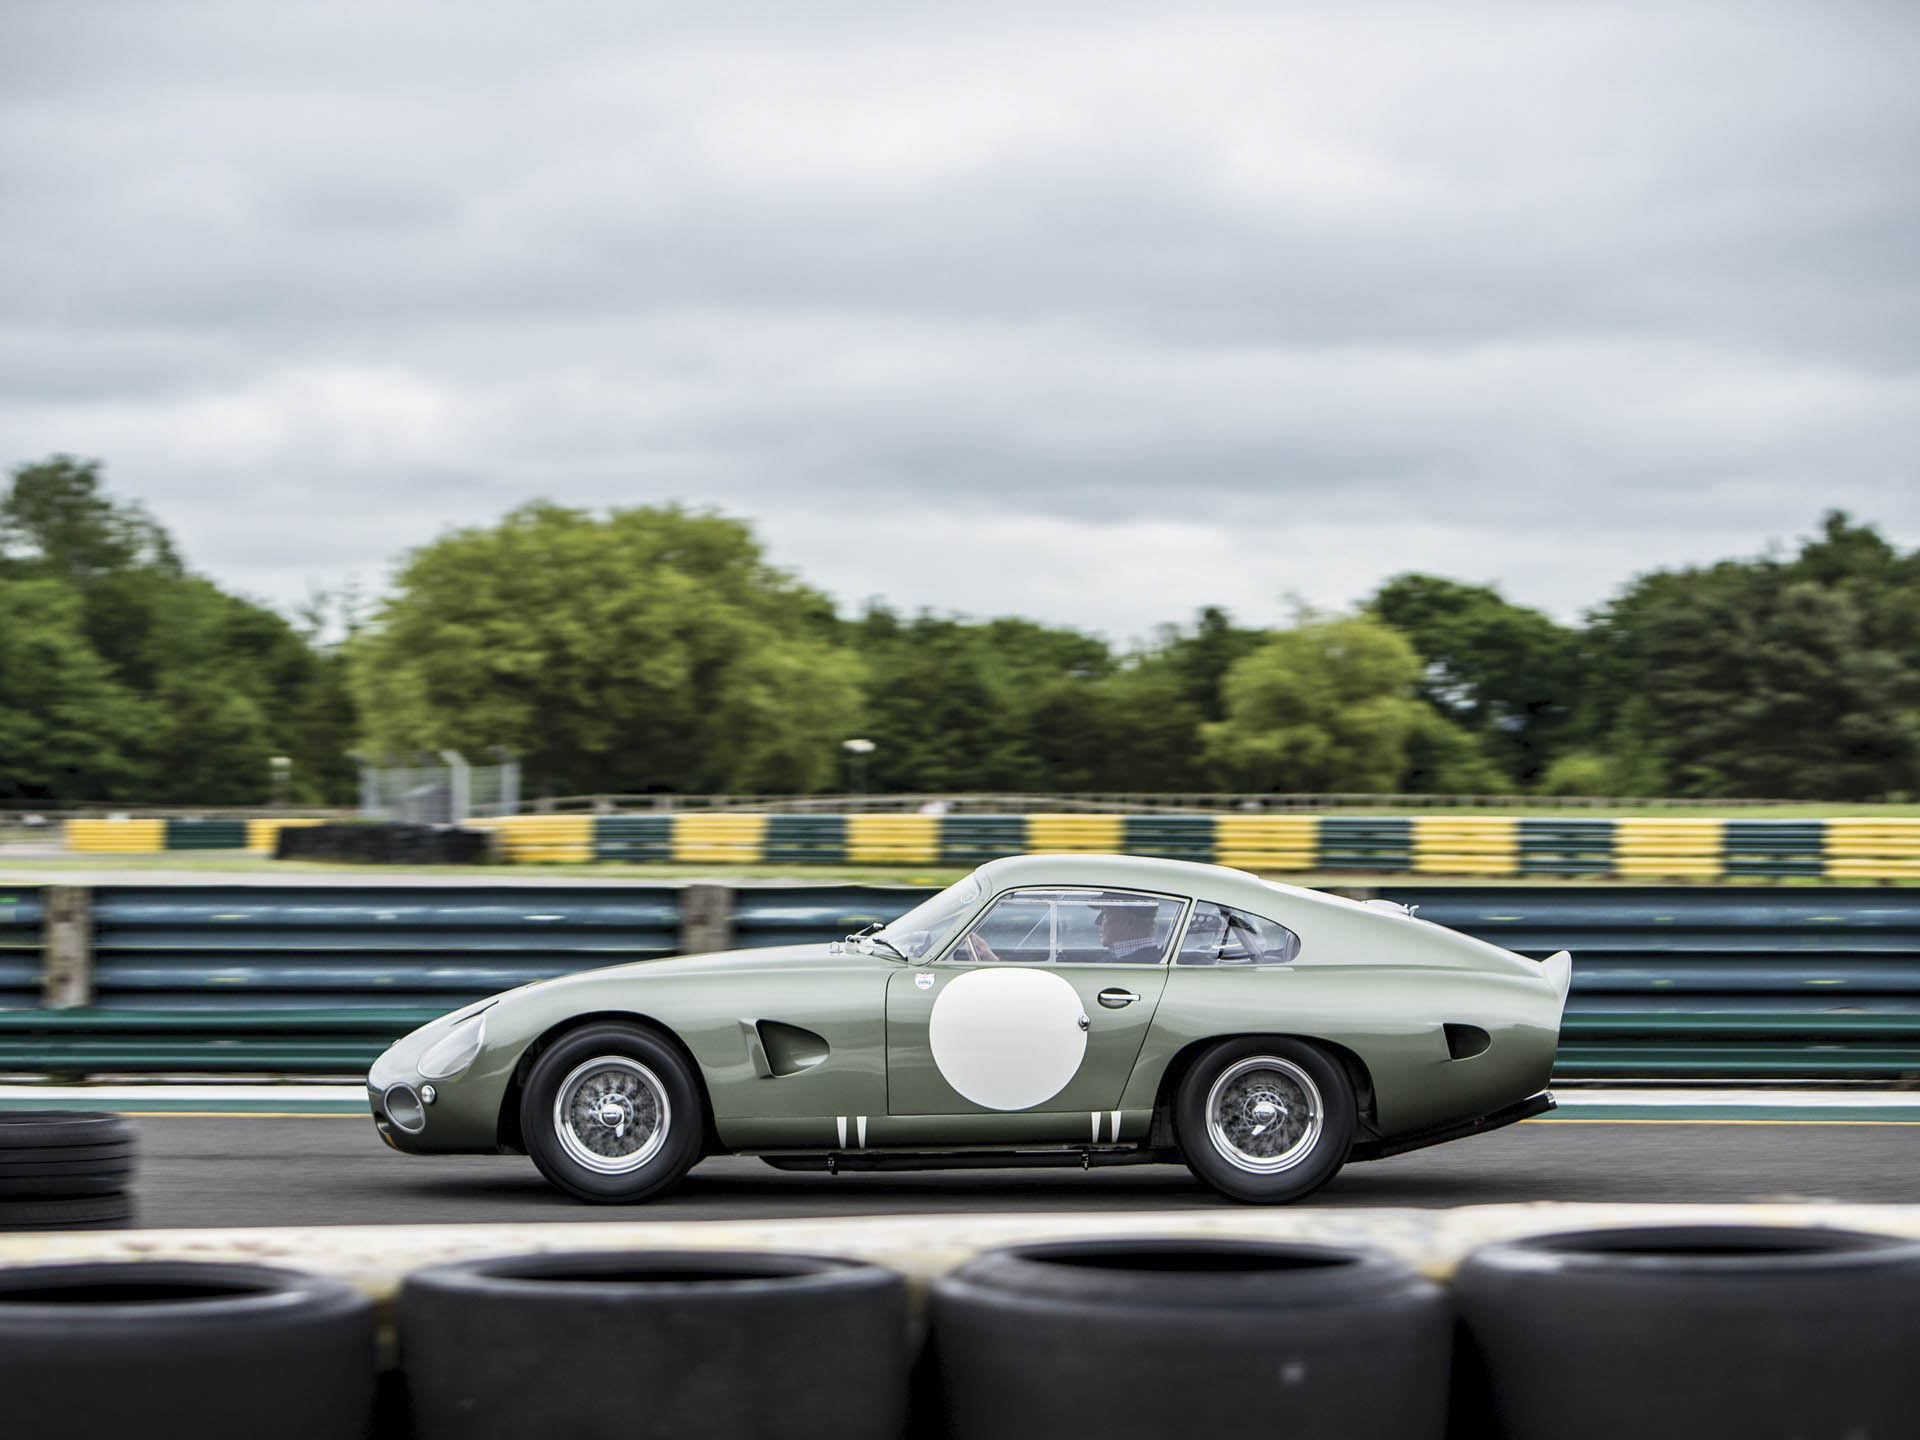 1963 Aston Martin DP215 Grand Touring Competition Prototype profile on the track